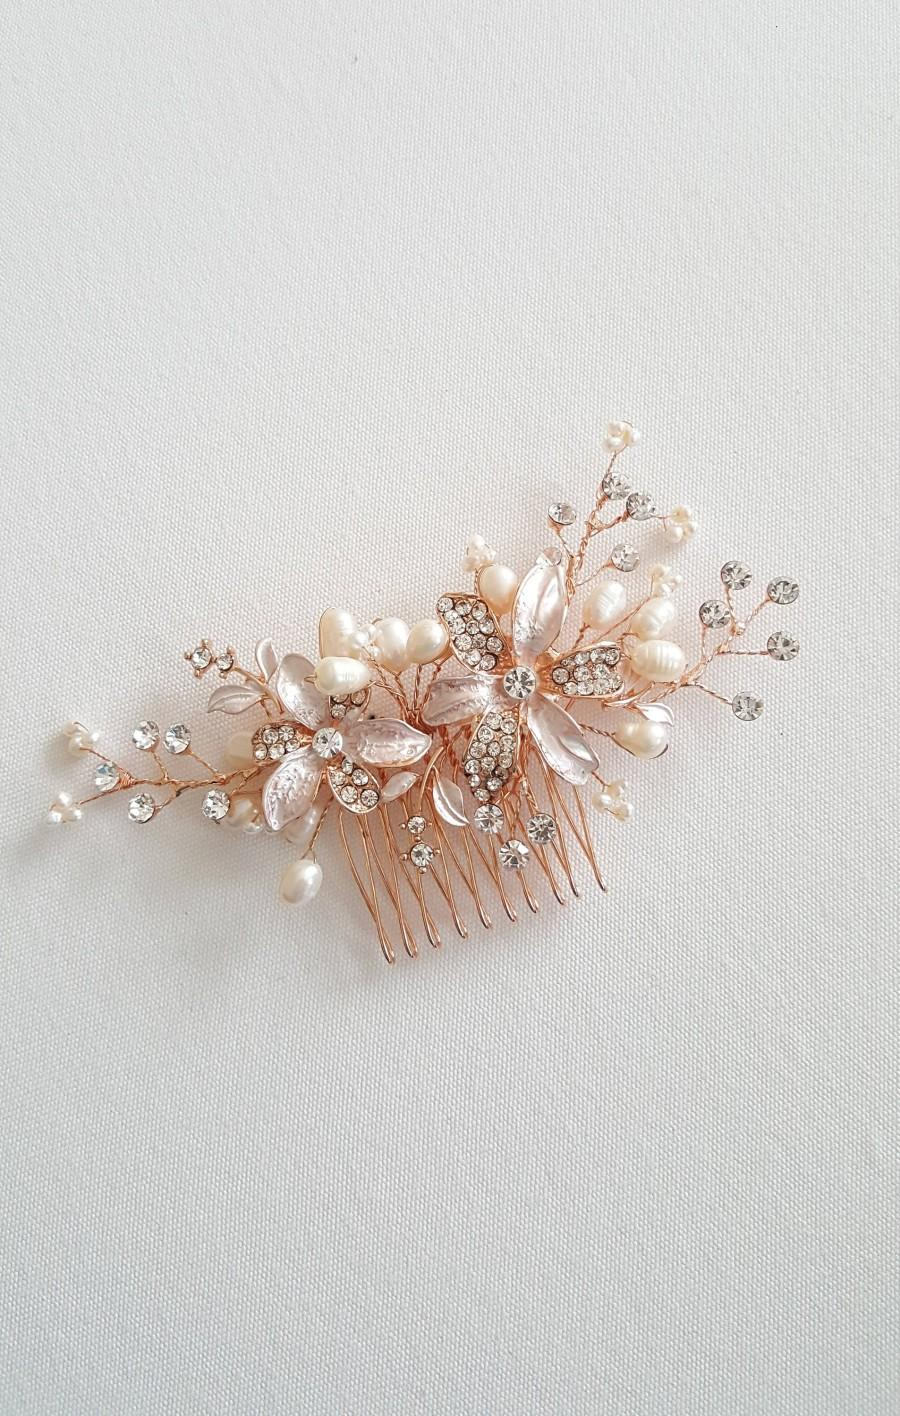 Mariage - Rose Gold Wedding Hair Comb, Pearl Wedding Headpiece, Crystal Pearl Bridal Comb, Gold Bridal Headpiece, Rose Gold Pearl Bridal Comb